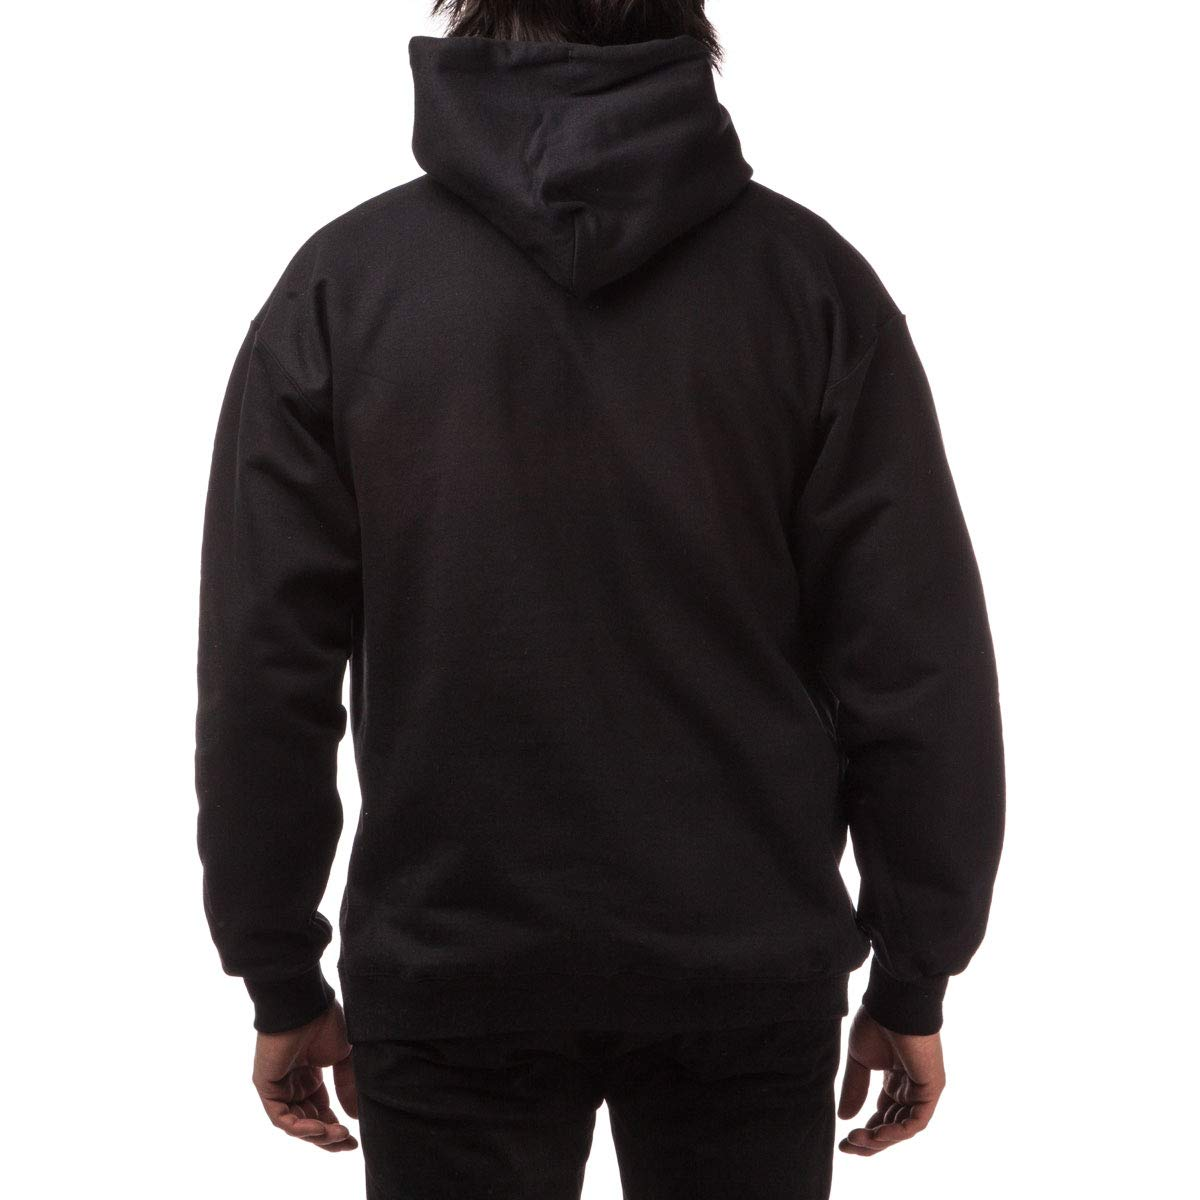 b2cadac7d502 Amazon.com  Thrasher Skate Mag Hoodie - Black  Clothing